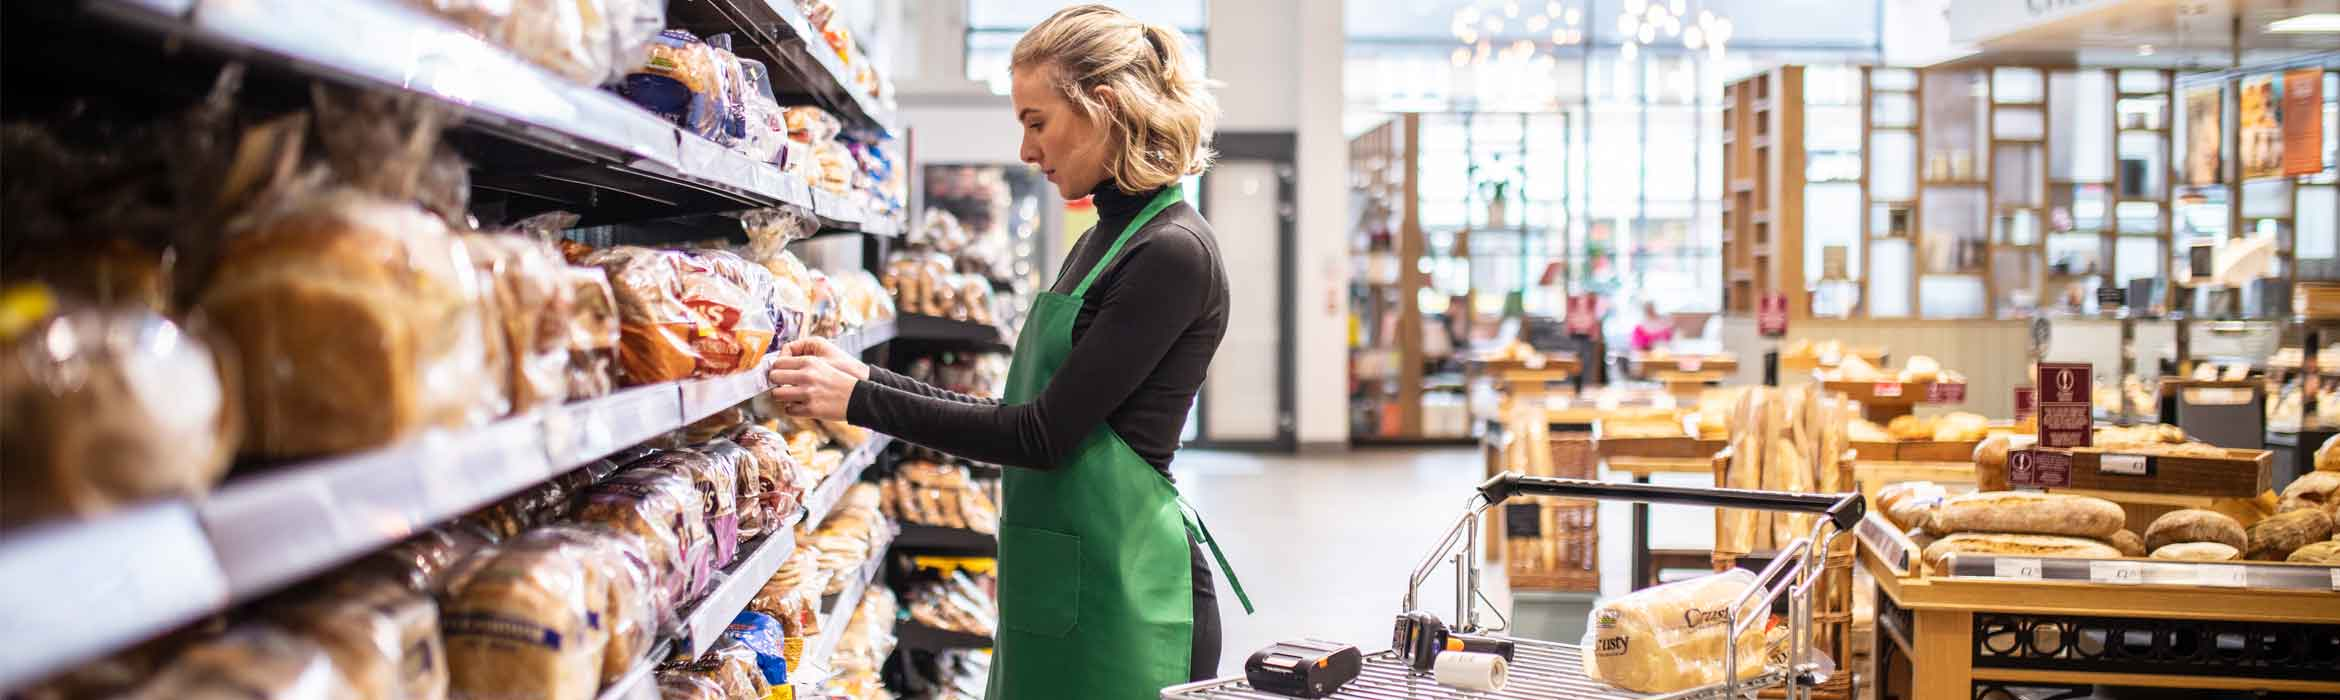 Lady working in a supermarket adding a shelf label on the bread aisle